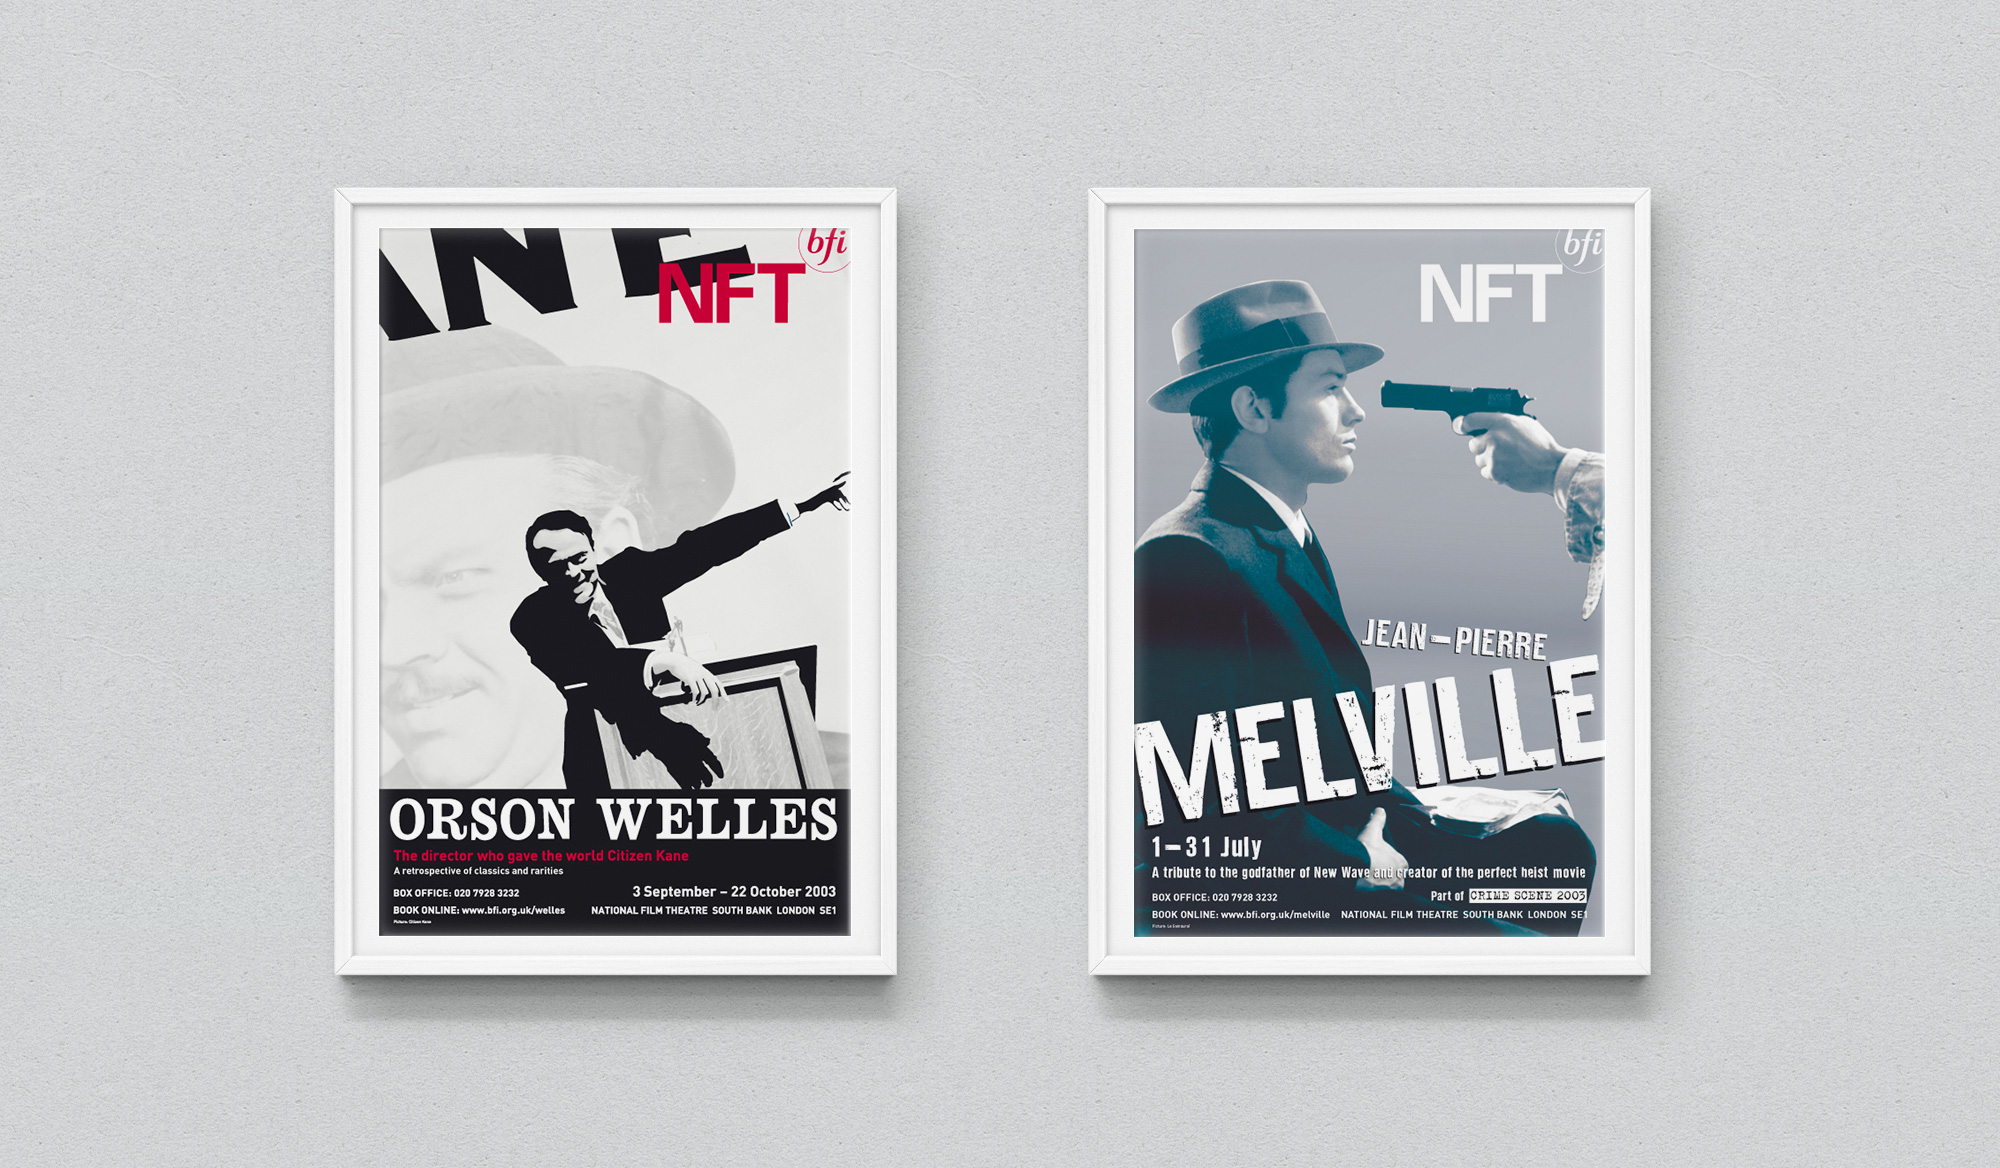 welles-melville-posters-background